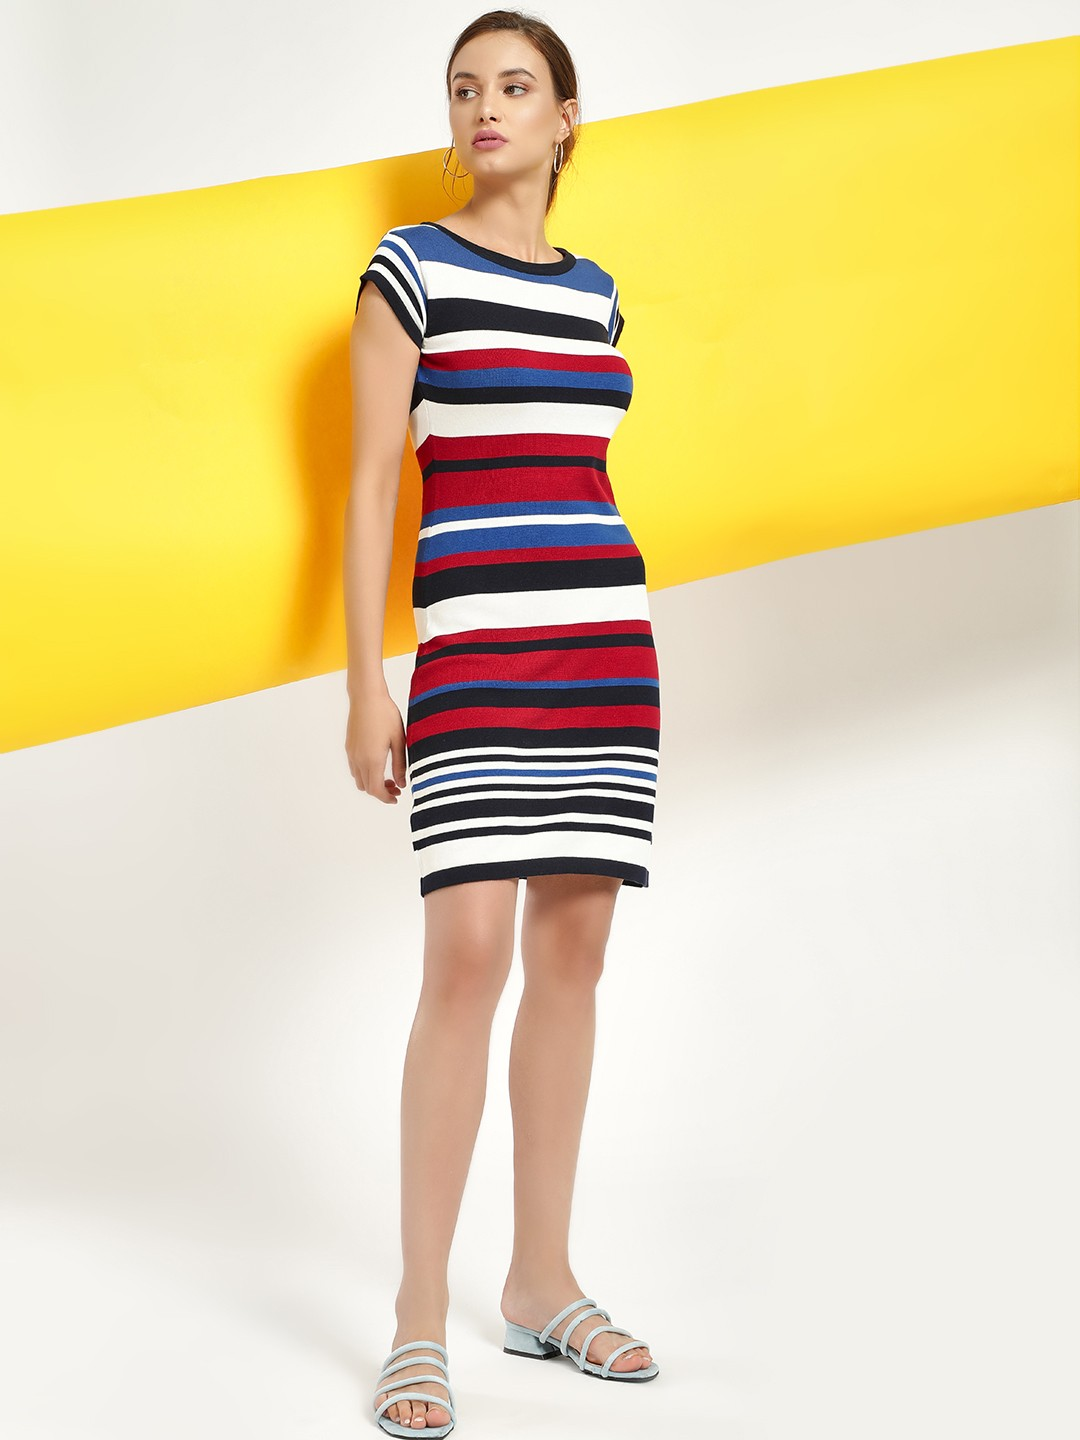 SCULLERS FOR HER White Knitted & Striped Bodycon Dress 1